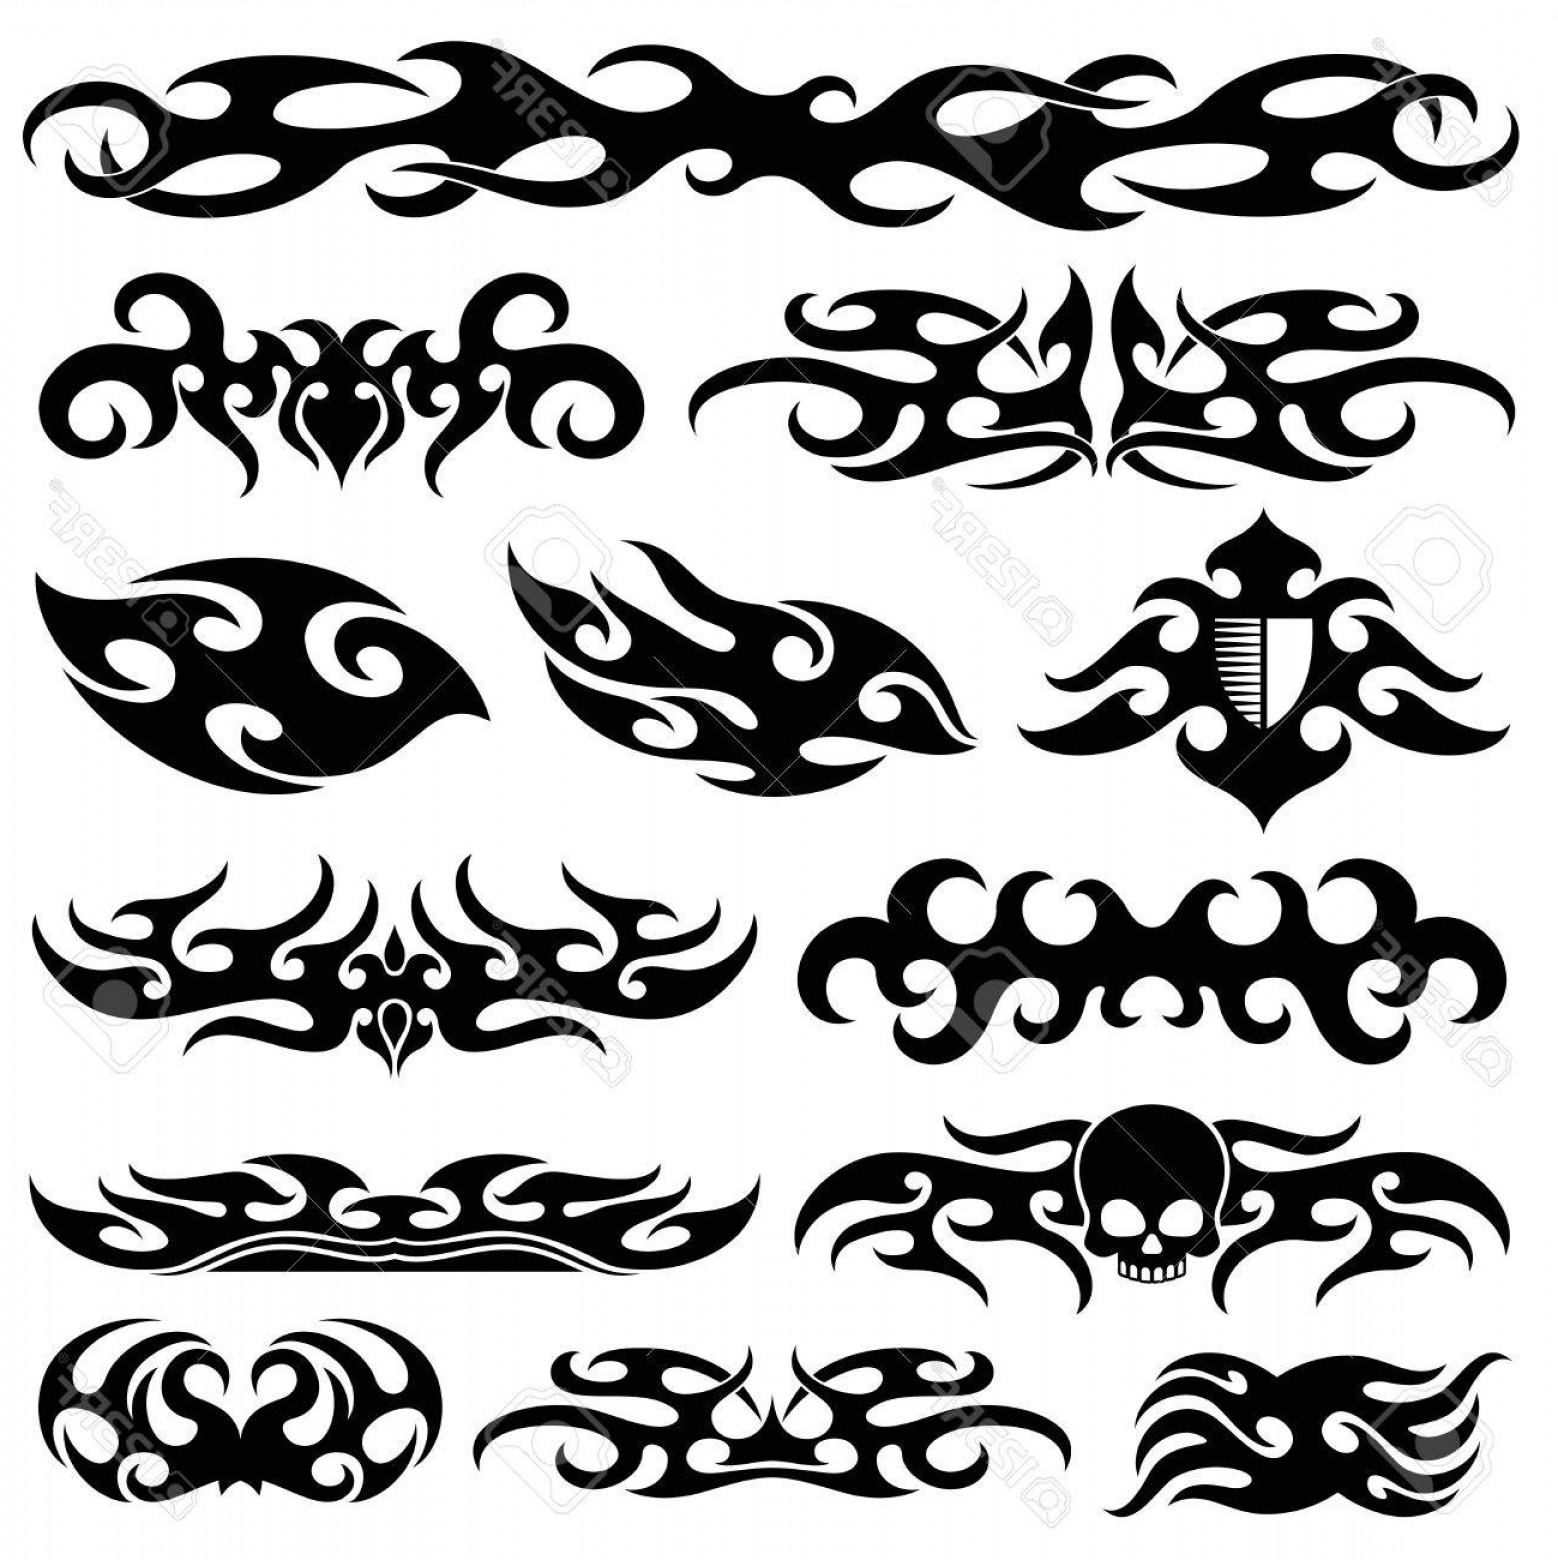 Black And White Vector Racing Graphics: Photostock Vector Racing Car Vinyl Decoration Motorbike Decals And Vehicle Vector Design Black Artistic Pattern Tattoo